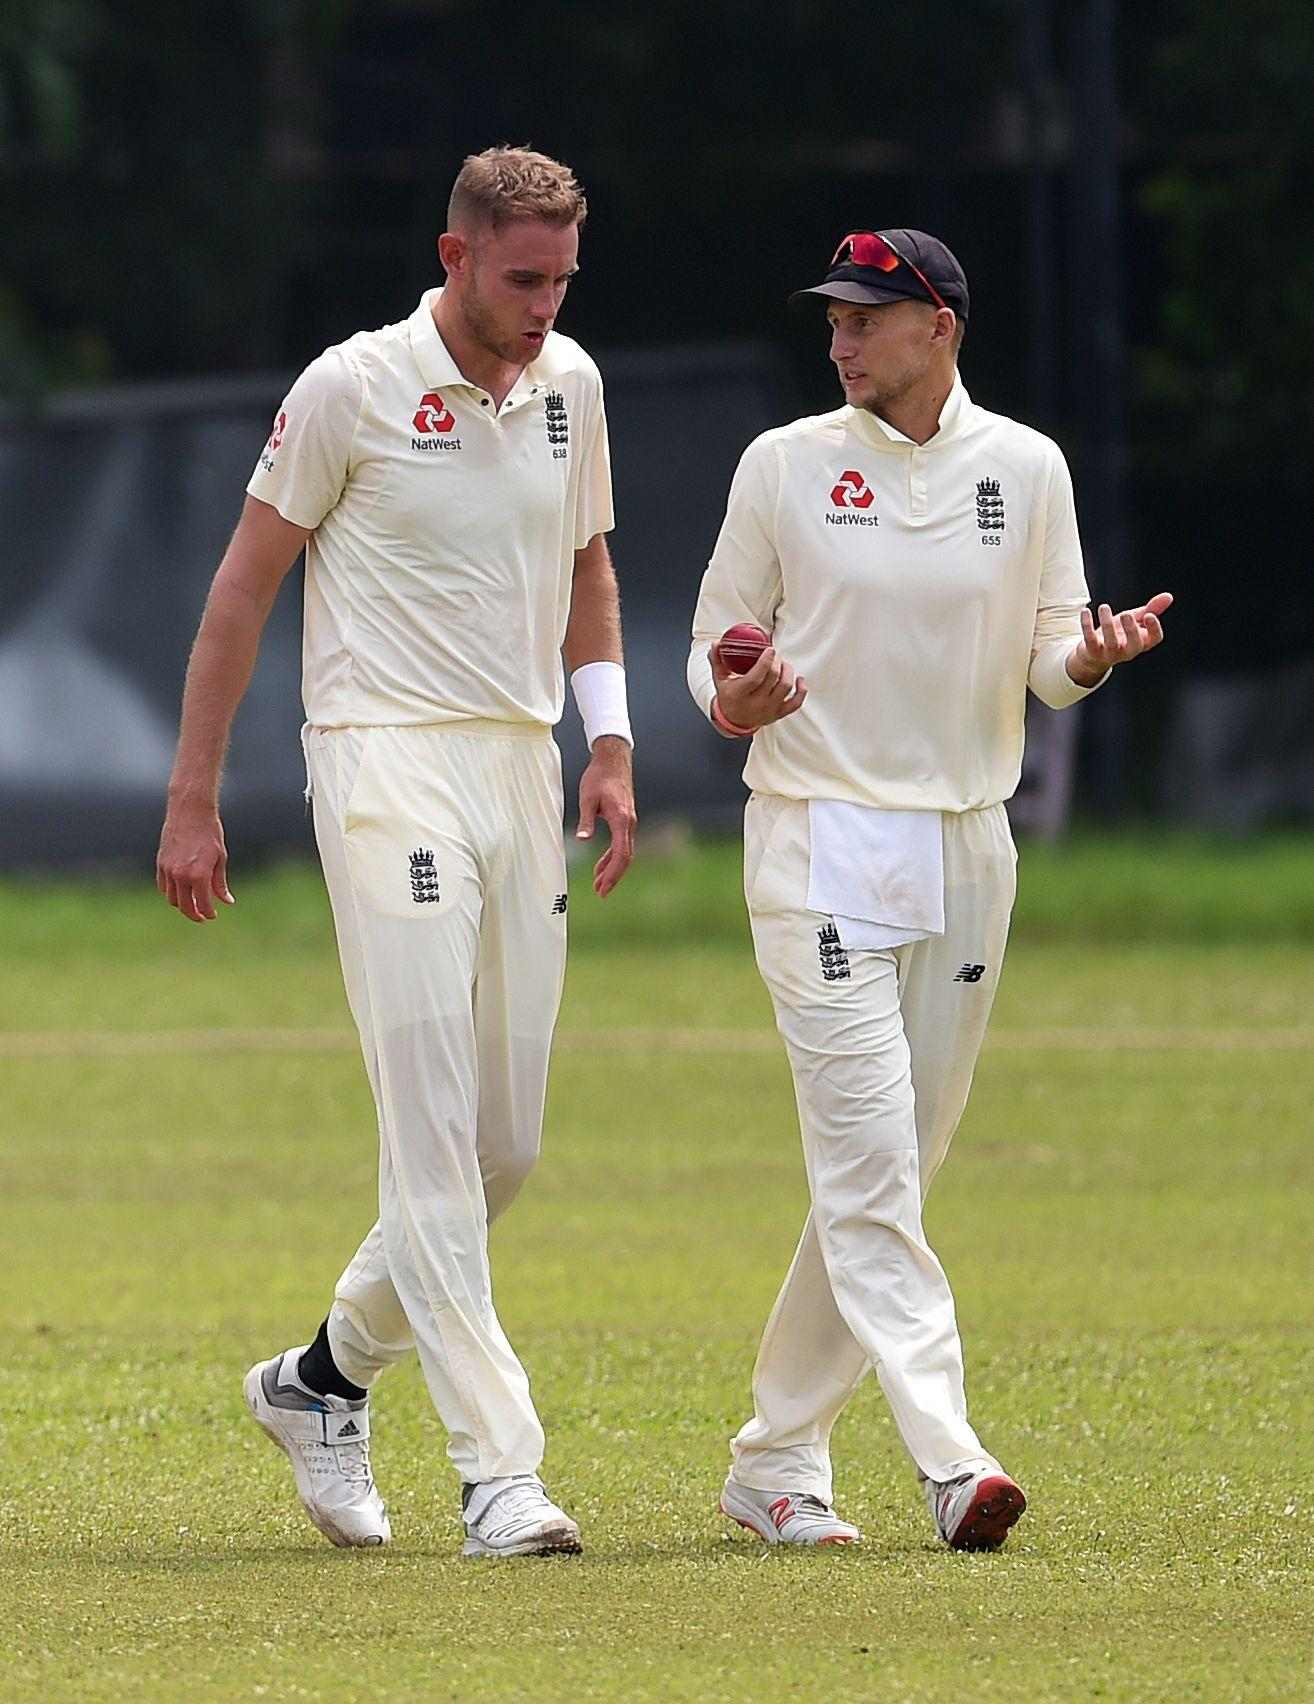 England toiled on a tricky day in preparation for the First Test in Sri Lanka